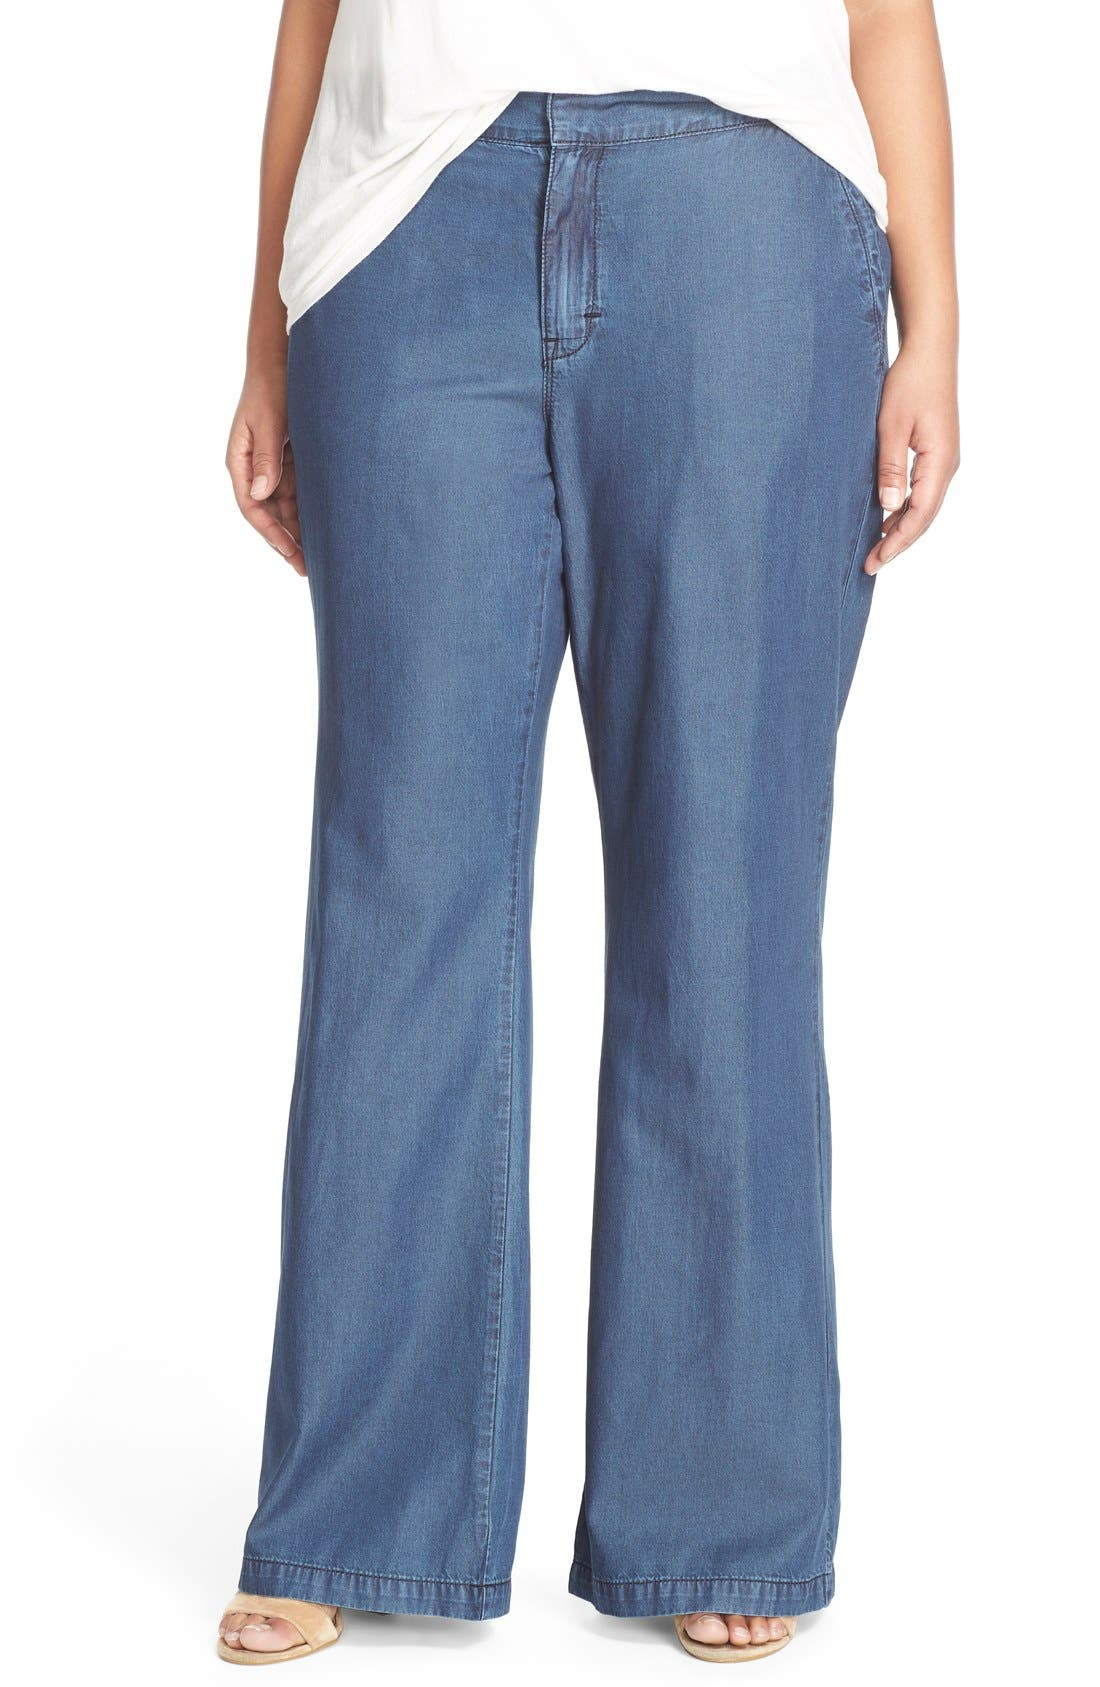 Main Image - Melissa McCarthy Seven7 Lightweight Denim Flare Leg Pants (Over Dye) (Plus Size)